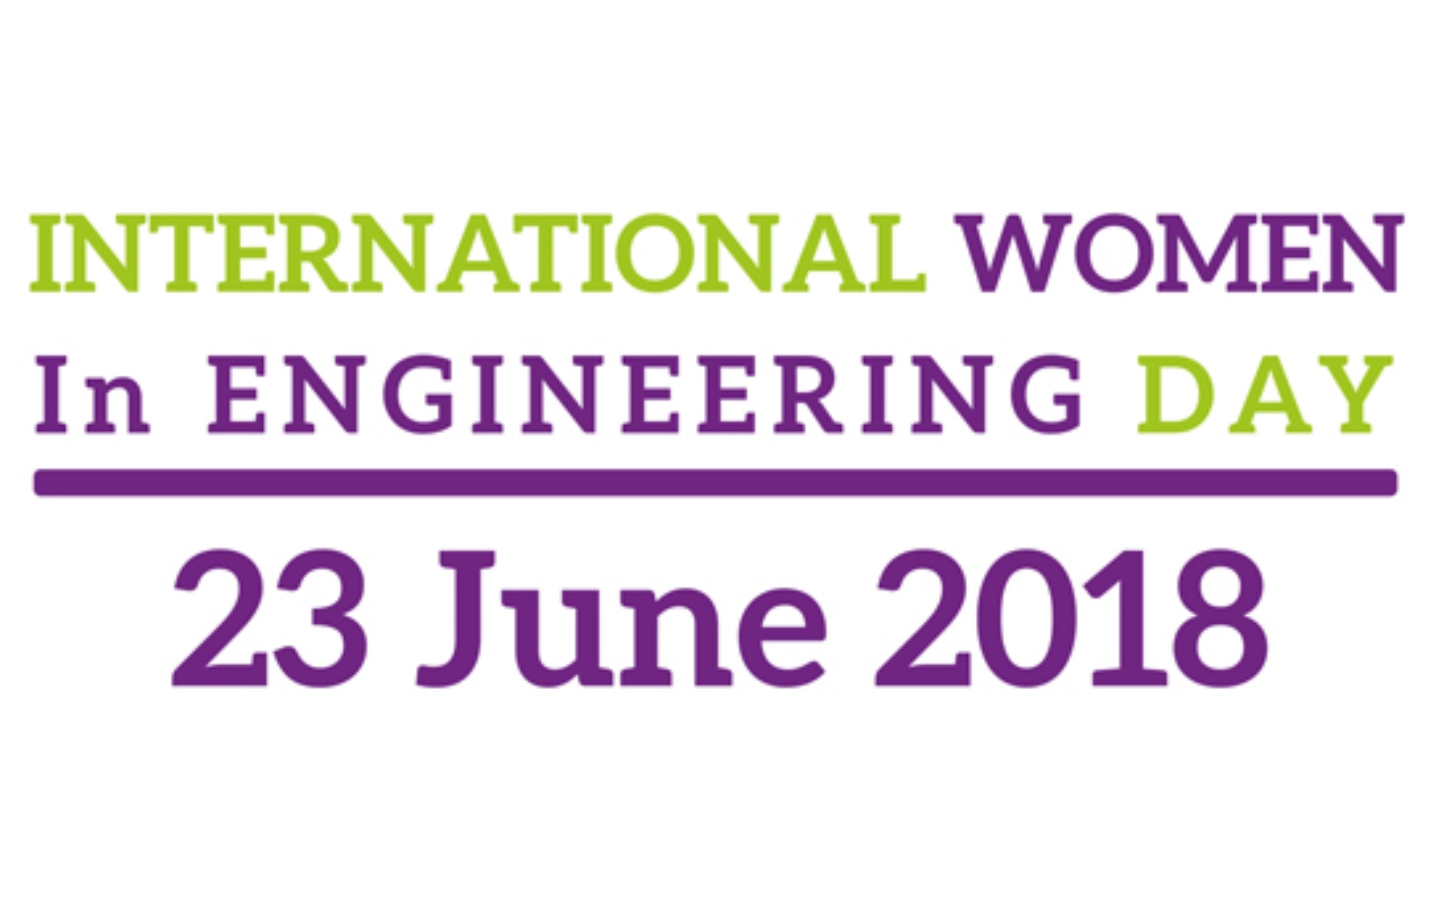 International Women in Engineering Day 2018